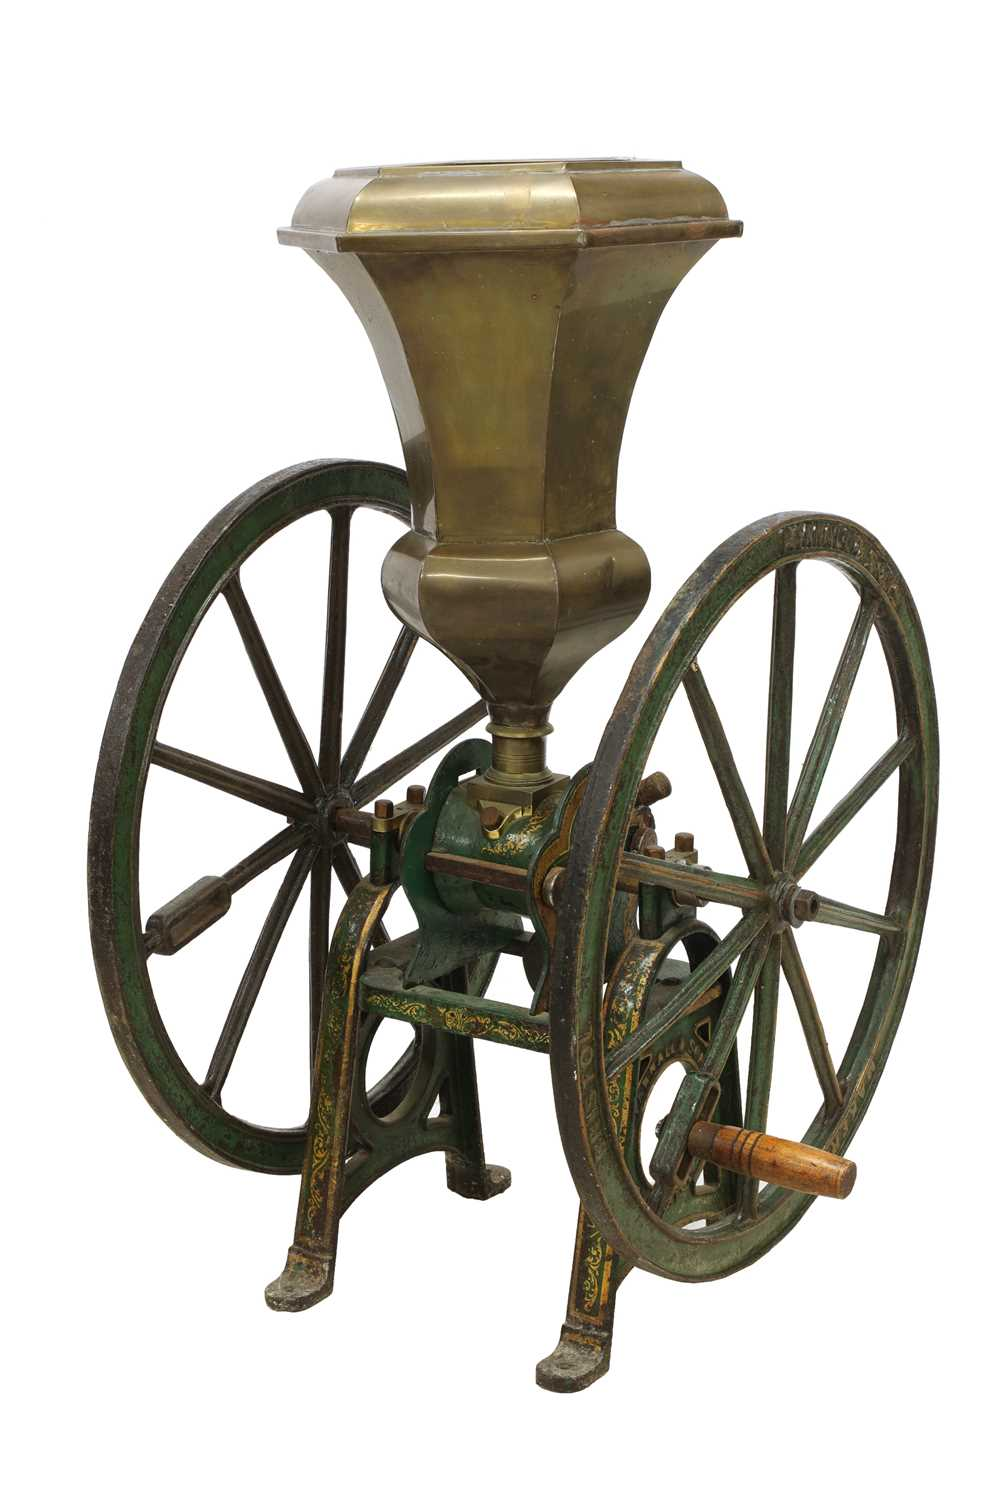 A large coffee grinder by Parnell & Sons,